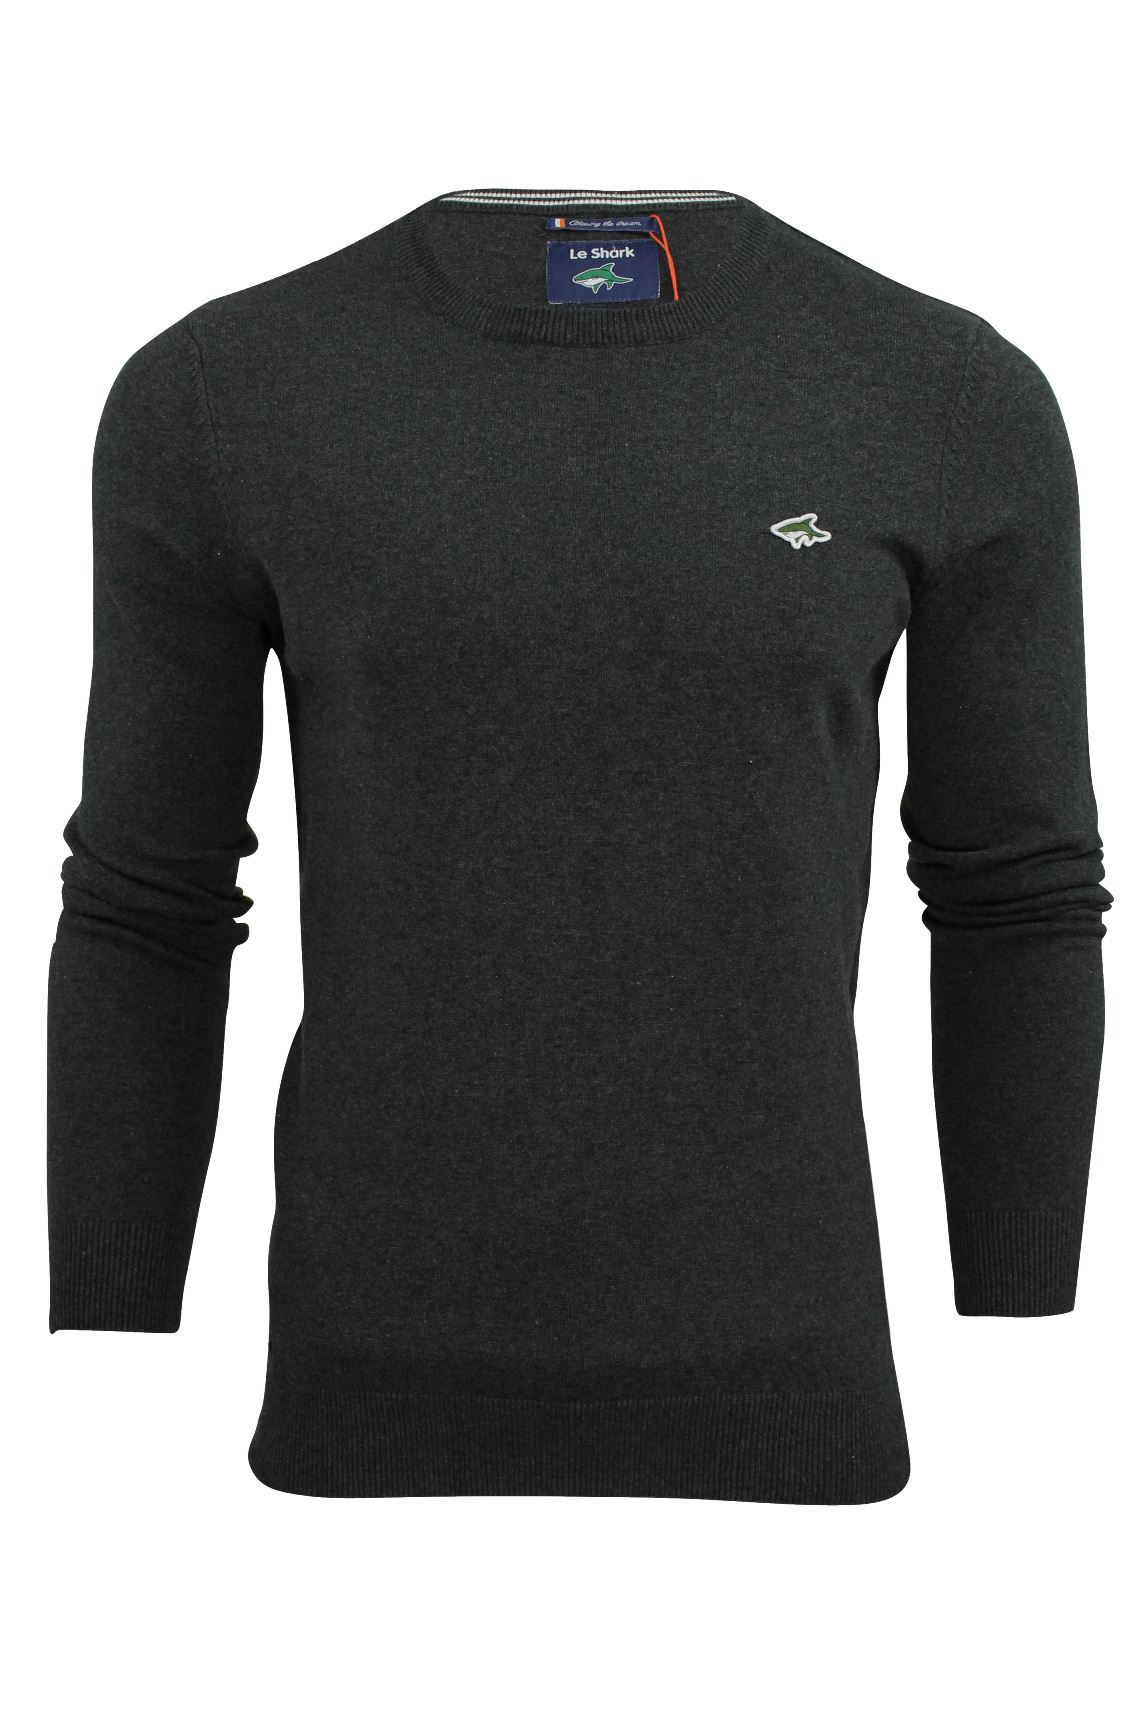 Mens-Jumper-by-Le-Shark-039-Ralph-039-Crew-Neck